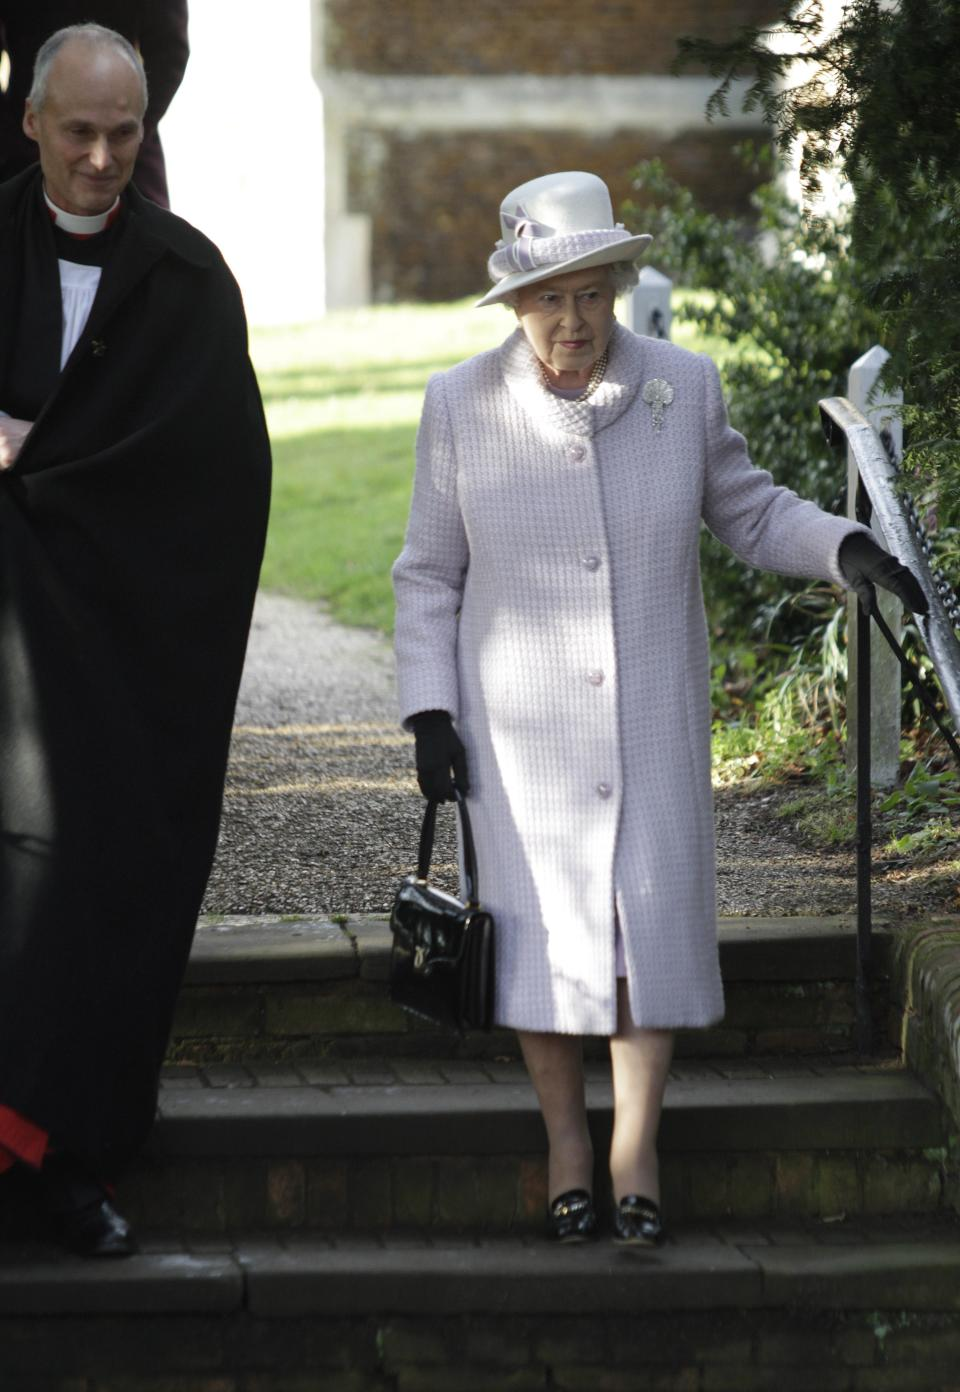 Britain's Queen Elizabeth II, right, leaves after she and other members of the royal family attended a Christmas Service at St. Mary's church on the grounds of Sandringham Estate, the Queen's Norfolk retreat, England, Sunday, Dec. 25, 2011. (AP Photo/Lefteris Pitarakis)